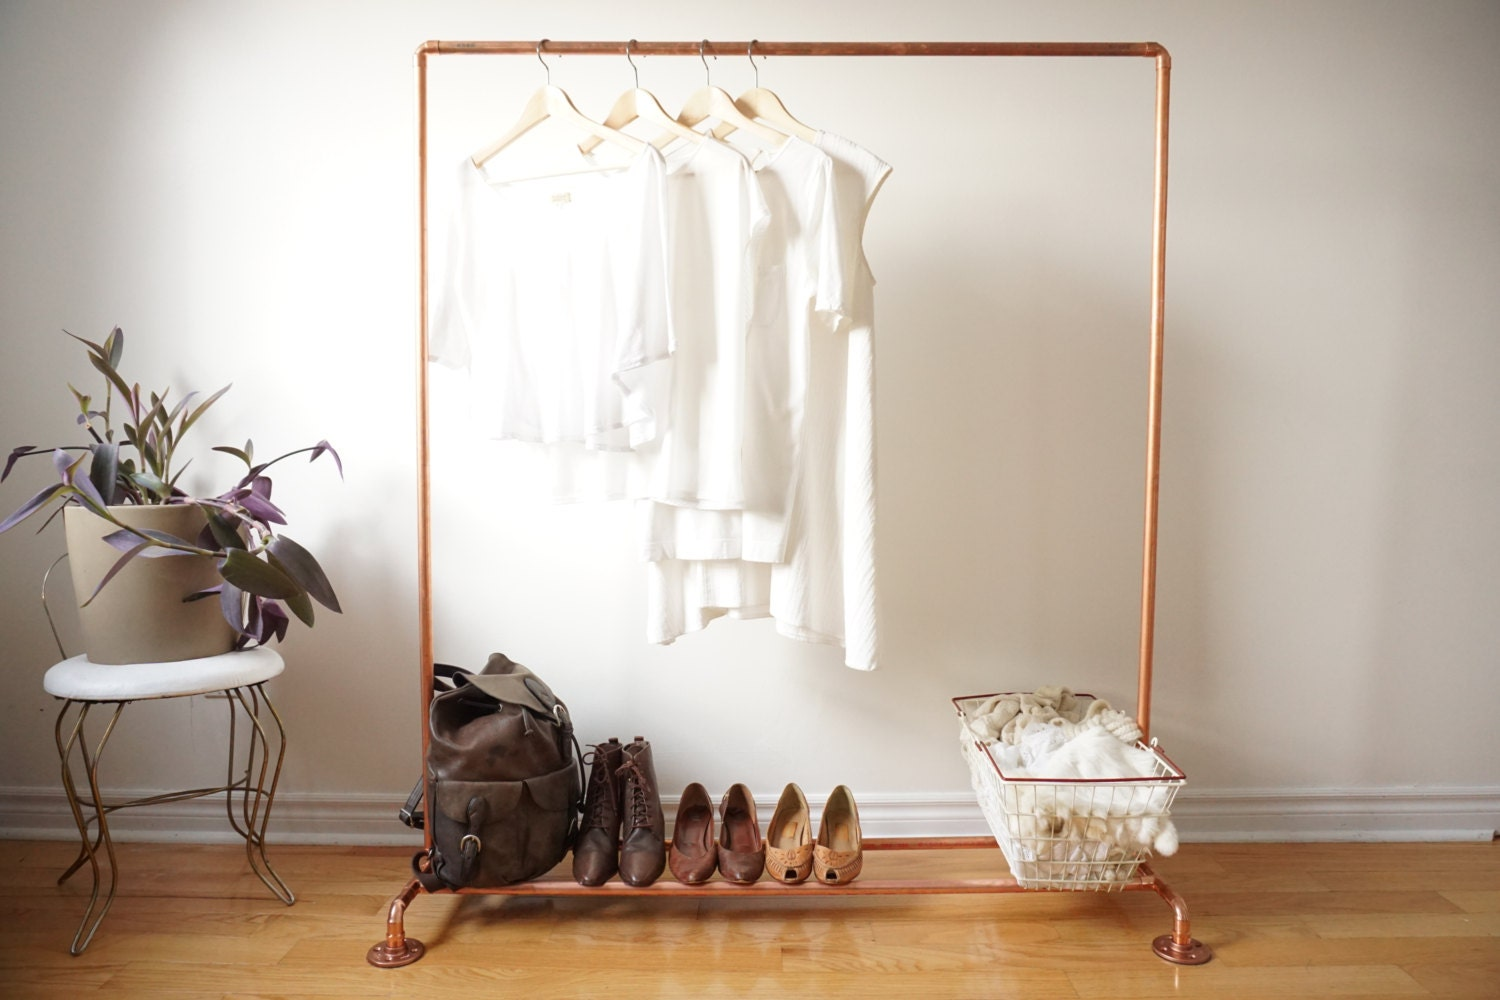 Copper Pipe Clothing Rack  Garment Rack  Clothes Rail